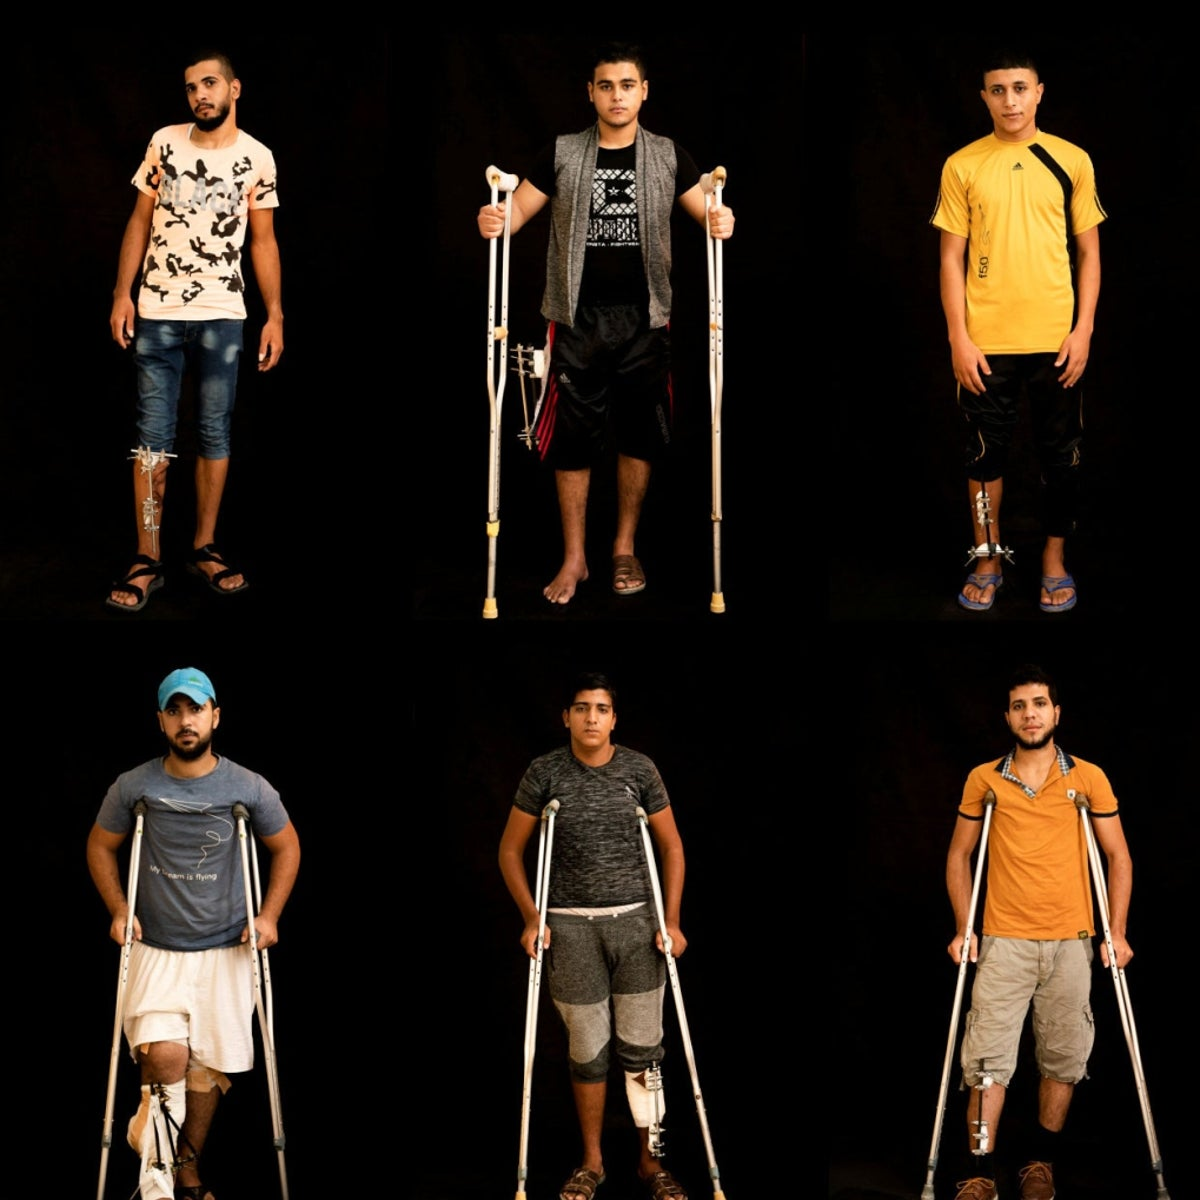 In this combination of 10 photos taken on Sept. 19, 2018, Palestinians shot in the legs during demonstrations at the Gaza strip's border with Israel pose as they await treatment at a Gaza City clinic run by MSF (Doctors Without Borders). Israeli forces deployed along the volatile border have fired live rounds at rock-throwing Palestinian protesters since demonstrations began in March against Israel's long-running blockade of Gaza. Israeli snipers have targeted one part of the body more than any other: the legs.